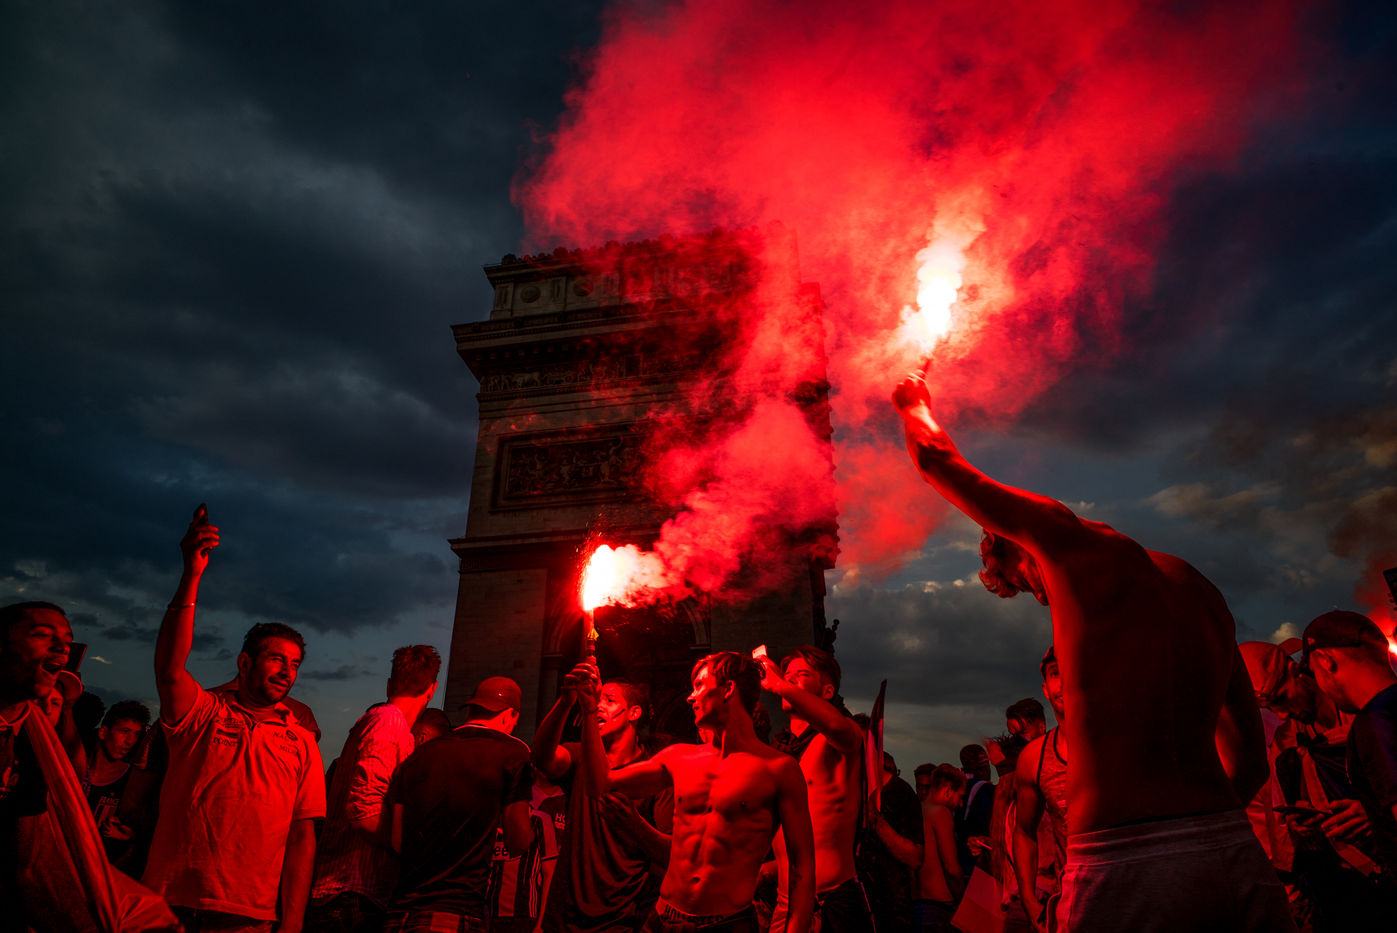 France Wins - World Cup 2018 - Russia -Fans Celebration - Paris